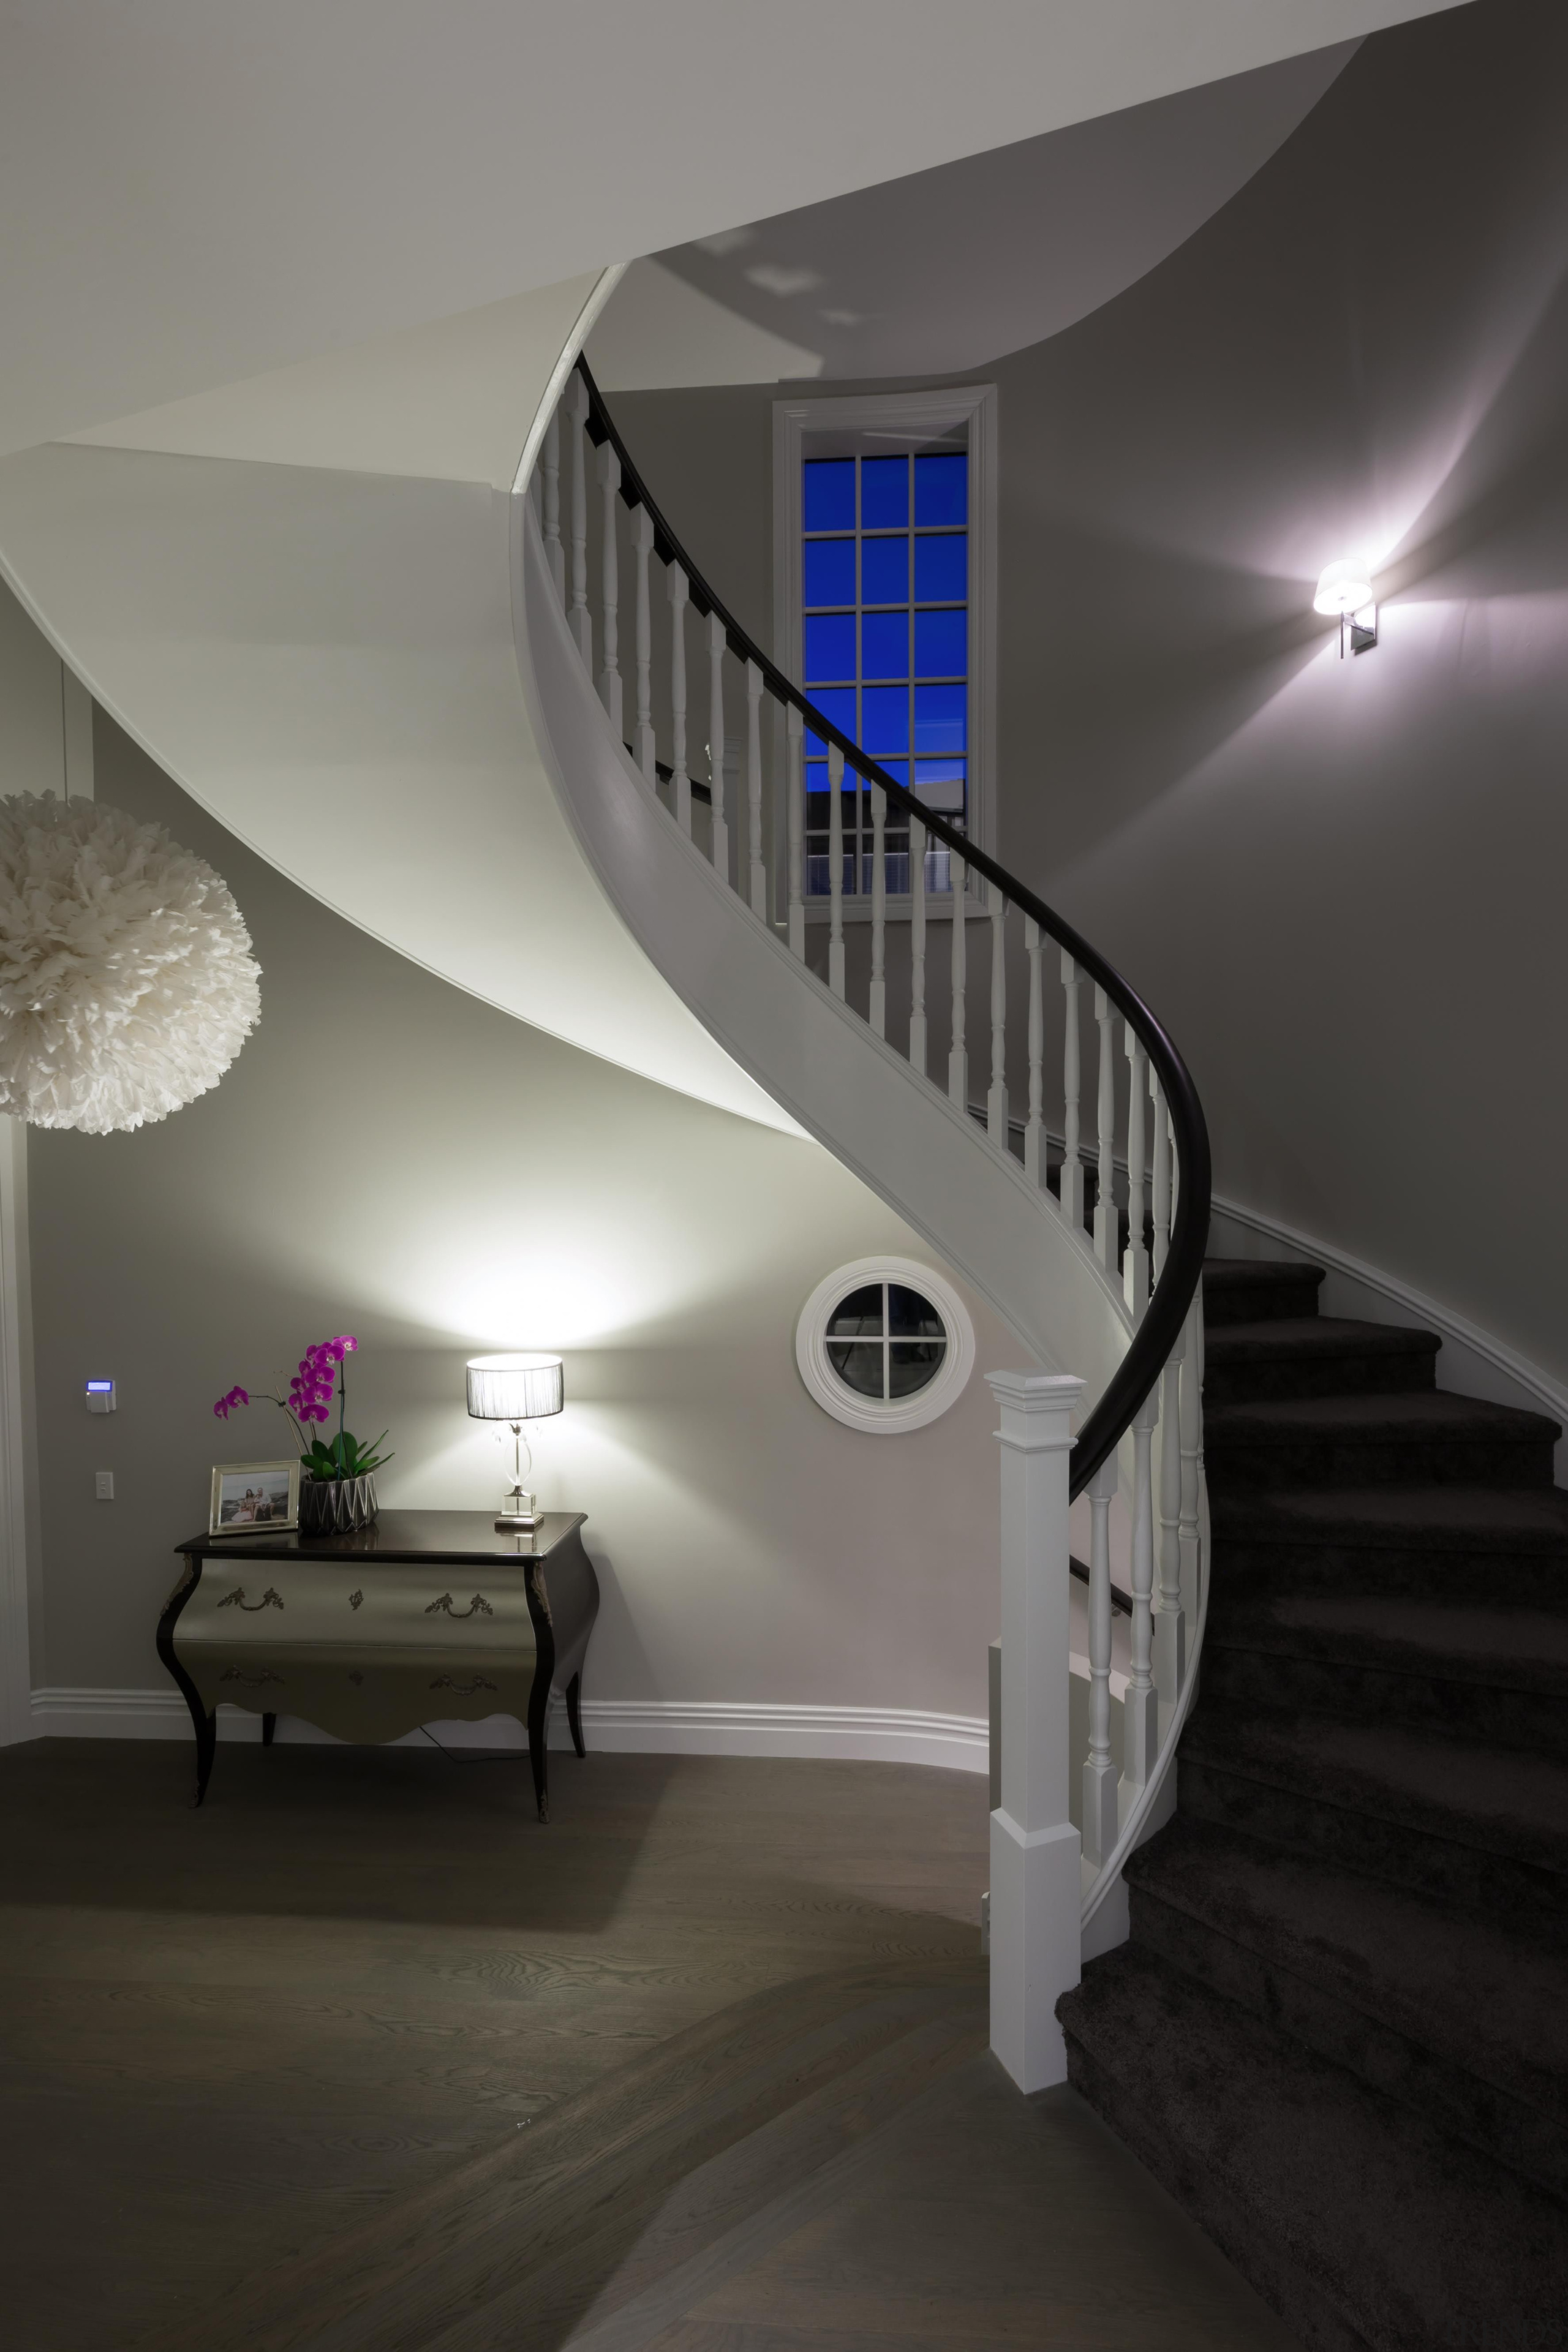 img9032.jpg - img9032.jpg - architecture | ceiling | architecture, ceiling, daylighting, handrail, home, house, interior design, light, lighting, product design, stairs, black, gray